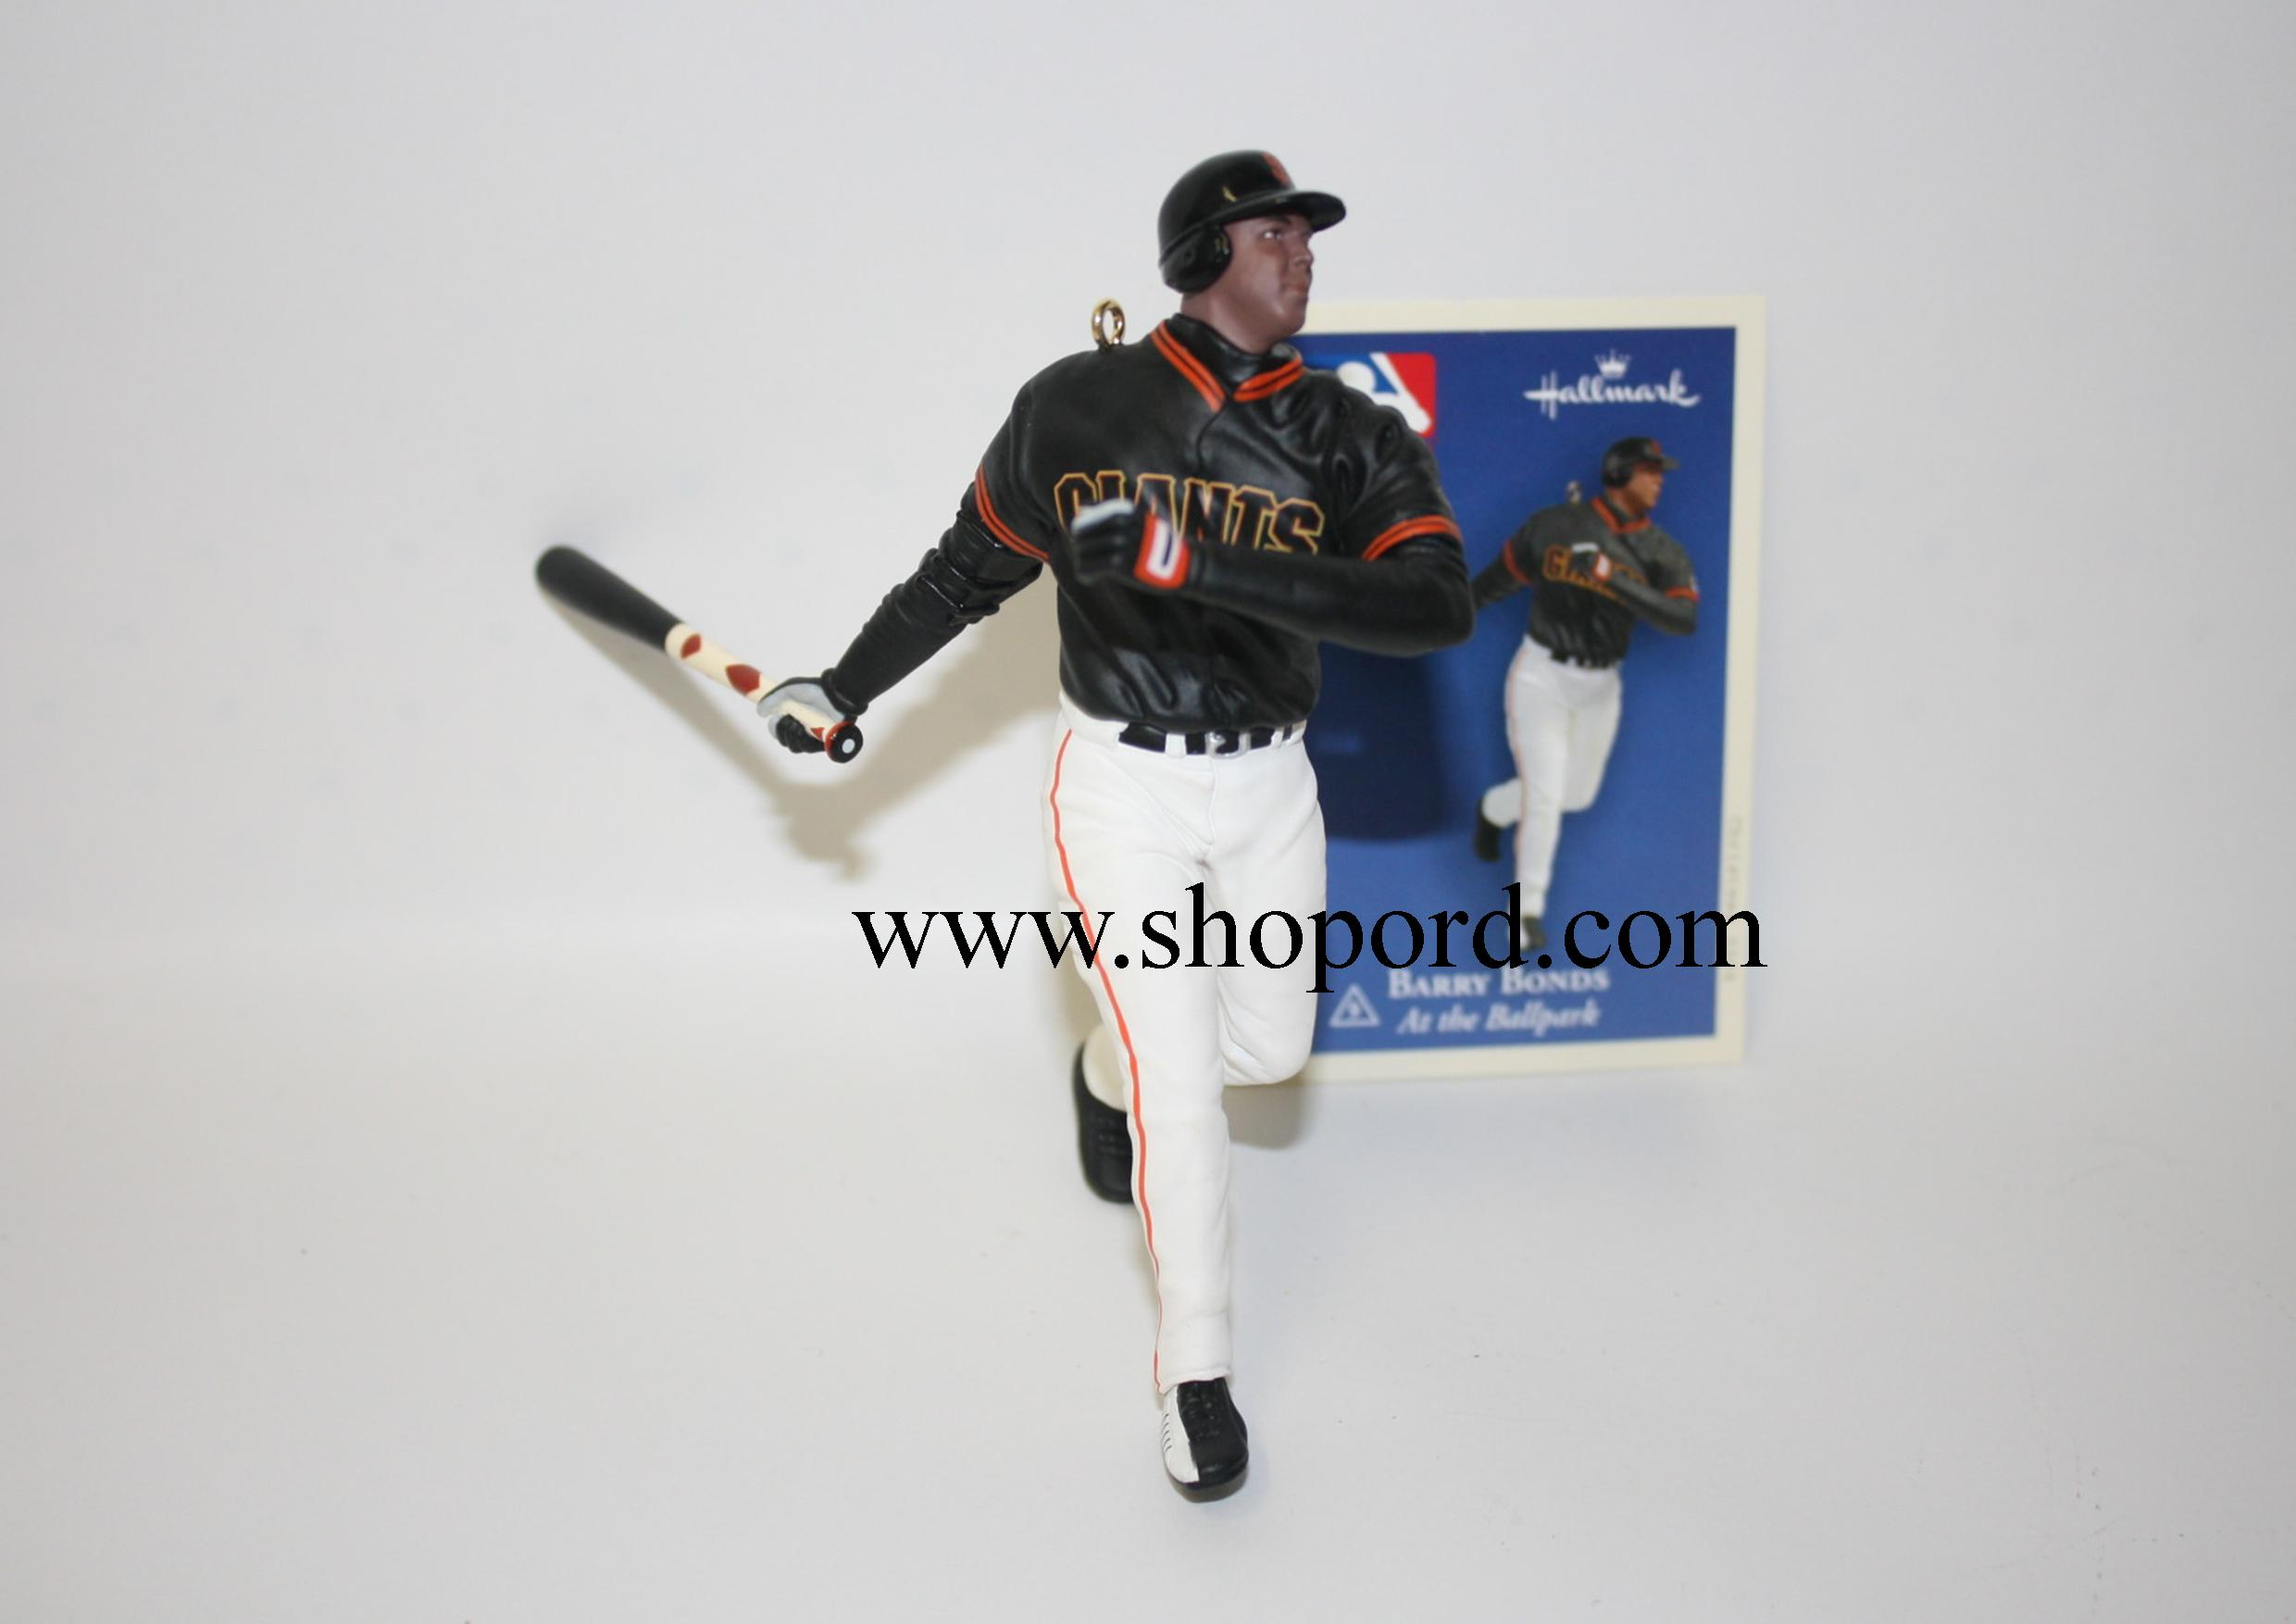 Hallmark 2004 Barry Bonds Baseball Ornament 9th in the At The Ballpark Series QX8551